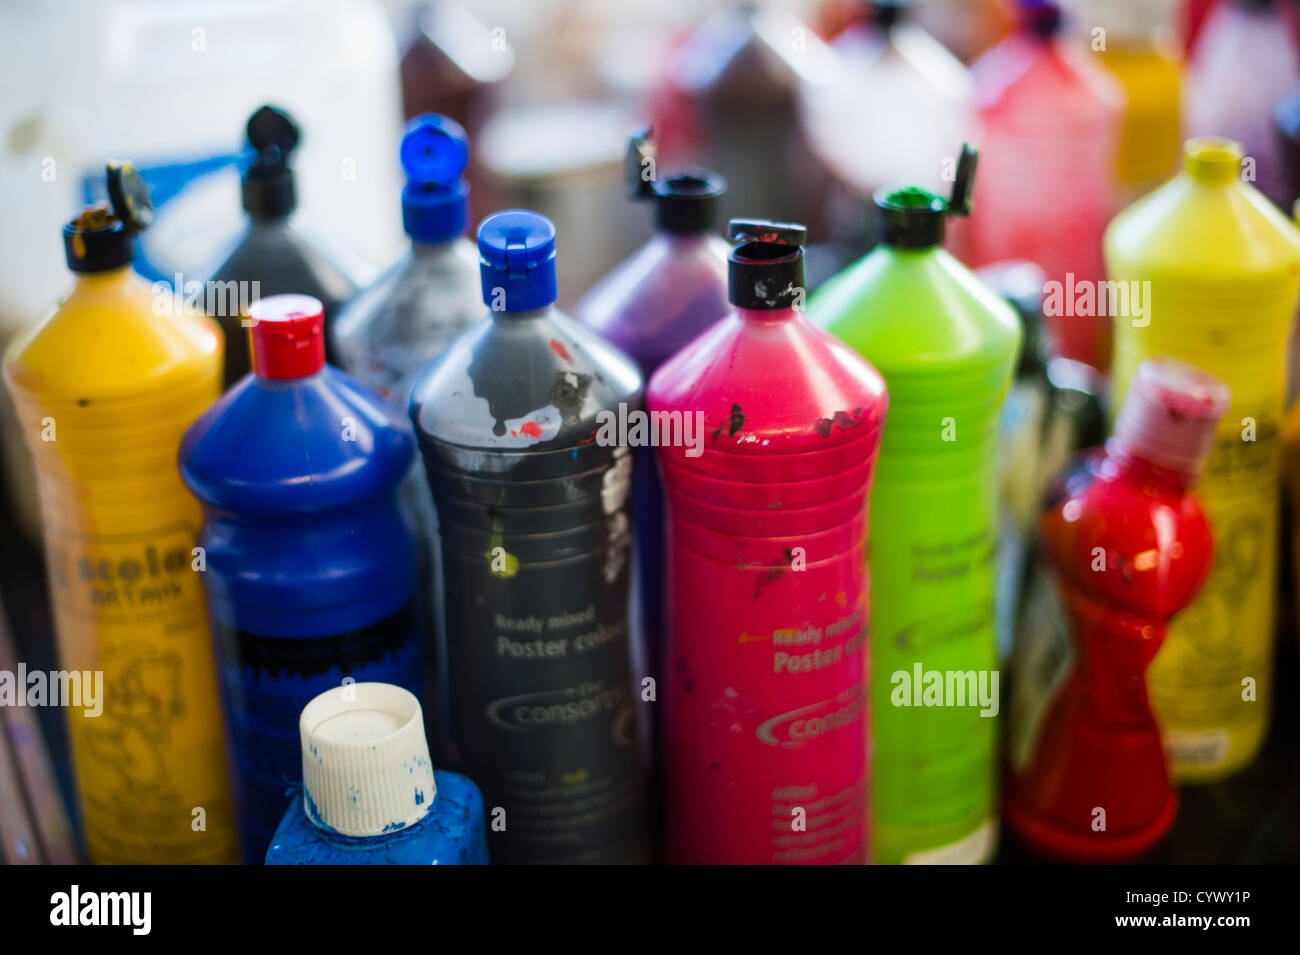 Bottles of acrylic paints in an art class lesson in a secondary comprehensive school in Wales UK - Stock Image